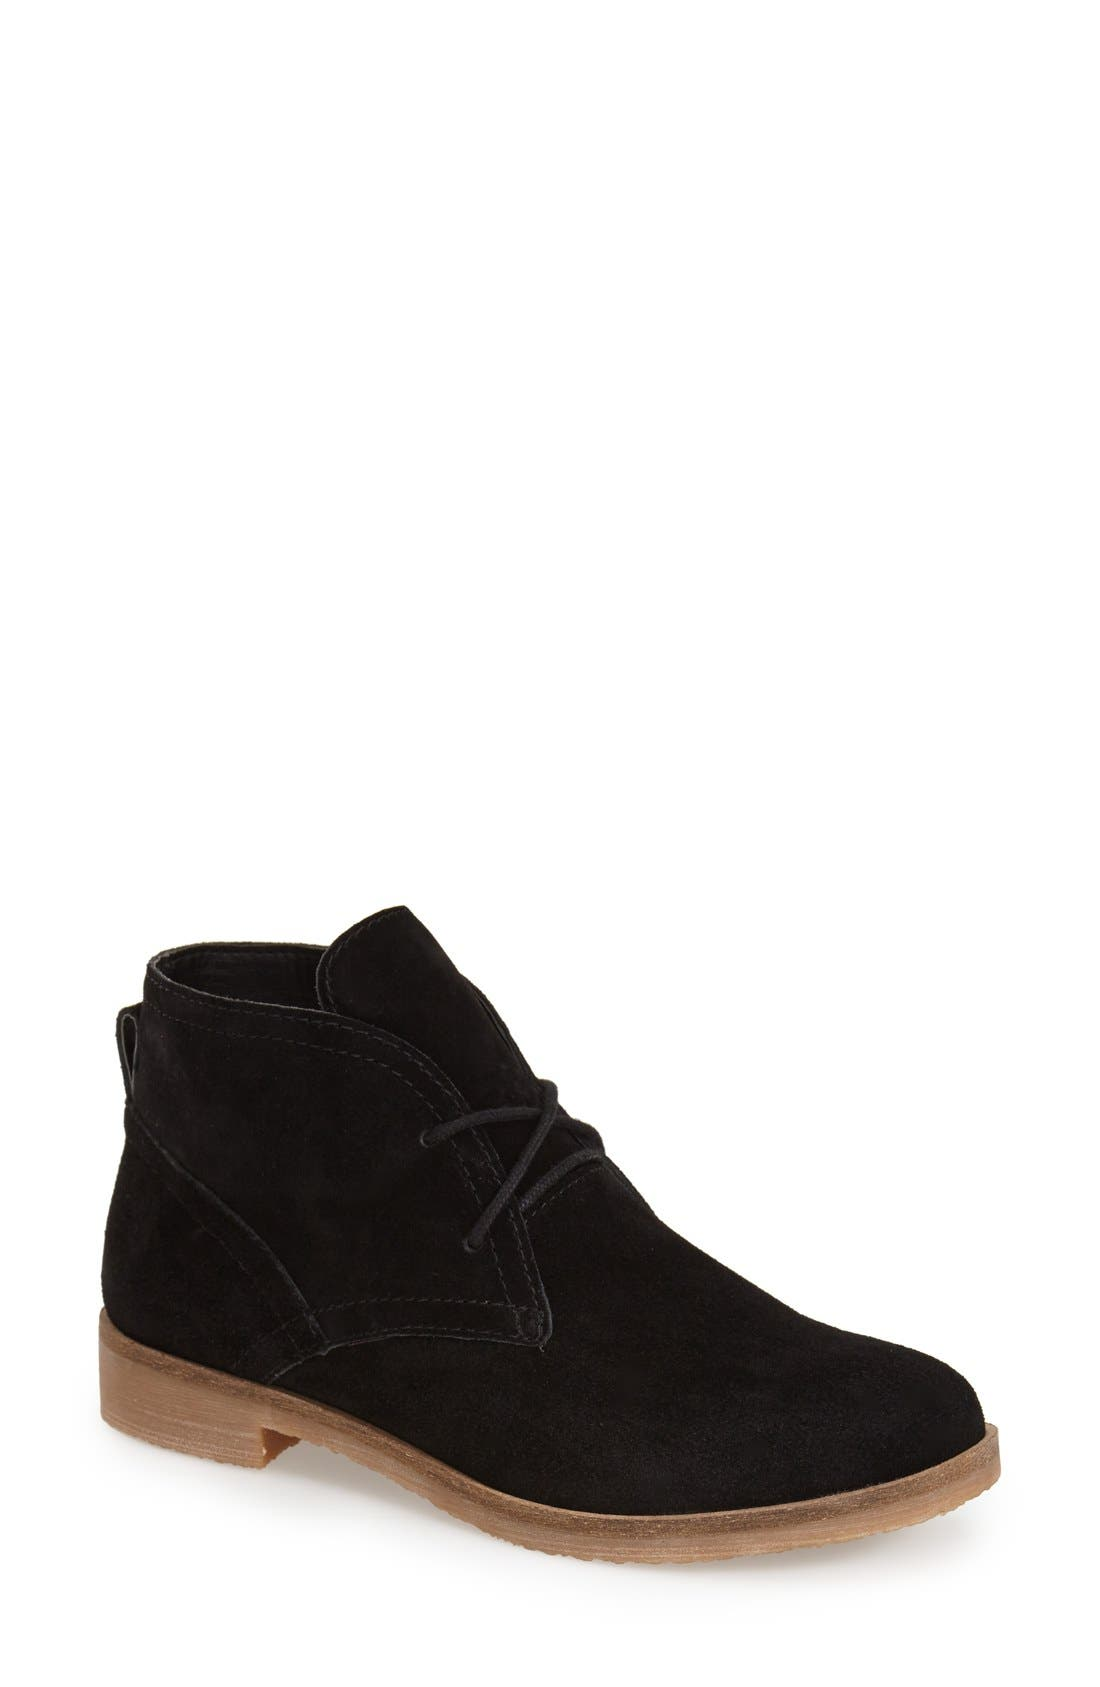 LuckyBrand'Garboh'Lace-UpBootie,                             Main thumbnail 1, color,                             001